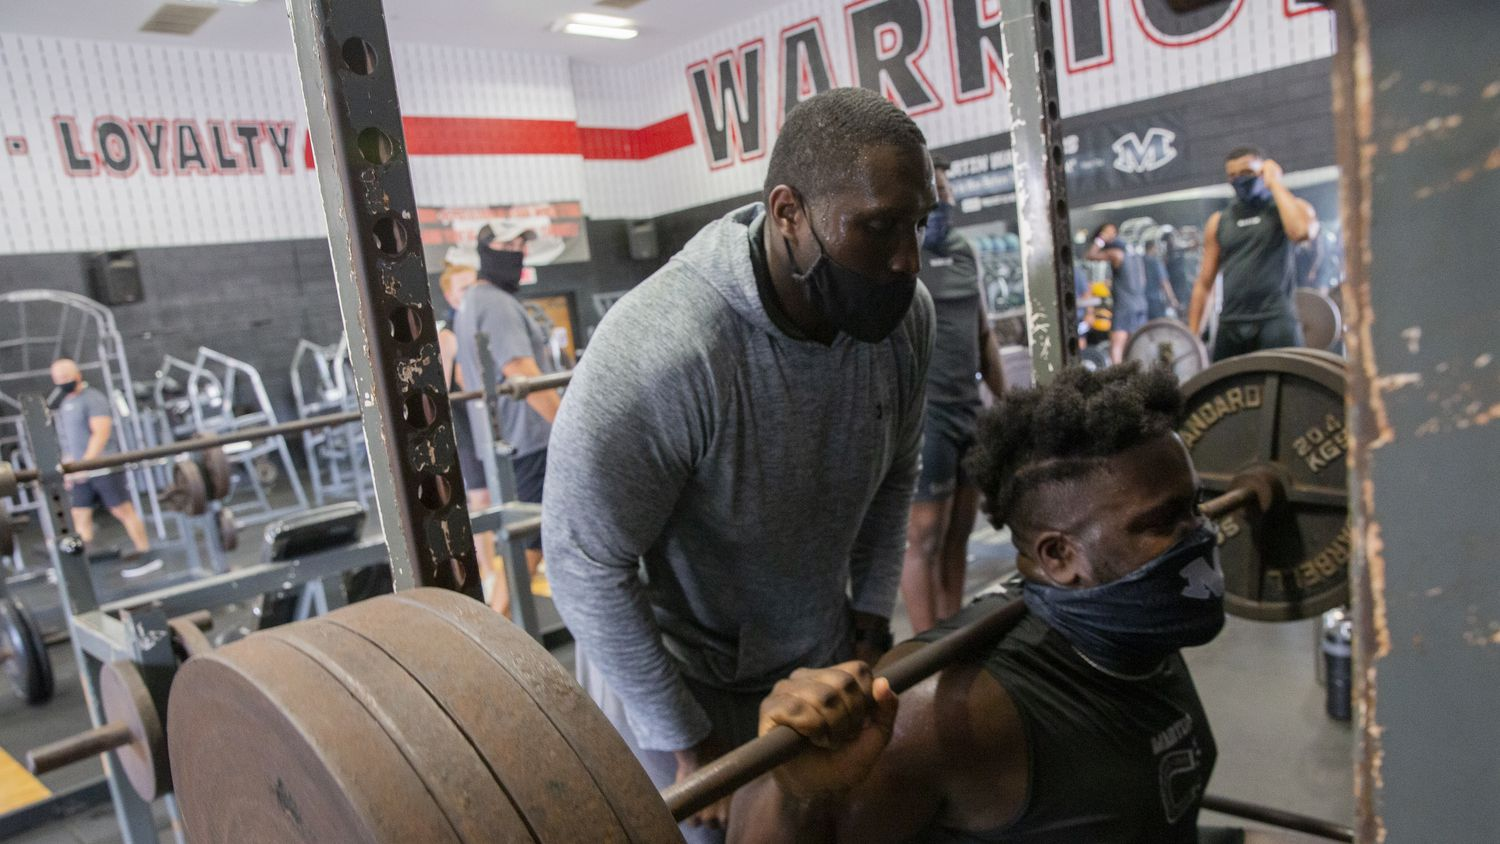 """Homicide Sergeant Brian Jones (left) from the Arlington Police Department spots for Arlington Martin Defensive tackle Marquis Evans during their workout at the school's gym as part of the """"Coach 5-0"""" program on Monday, Sept. 21, 2020 in Arlington."""